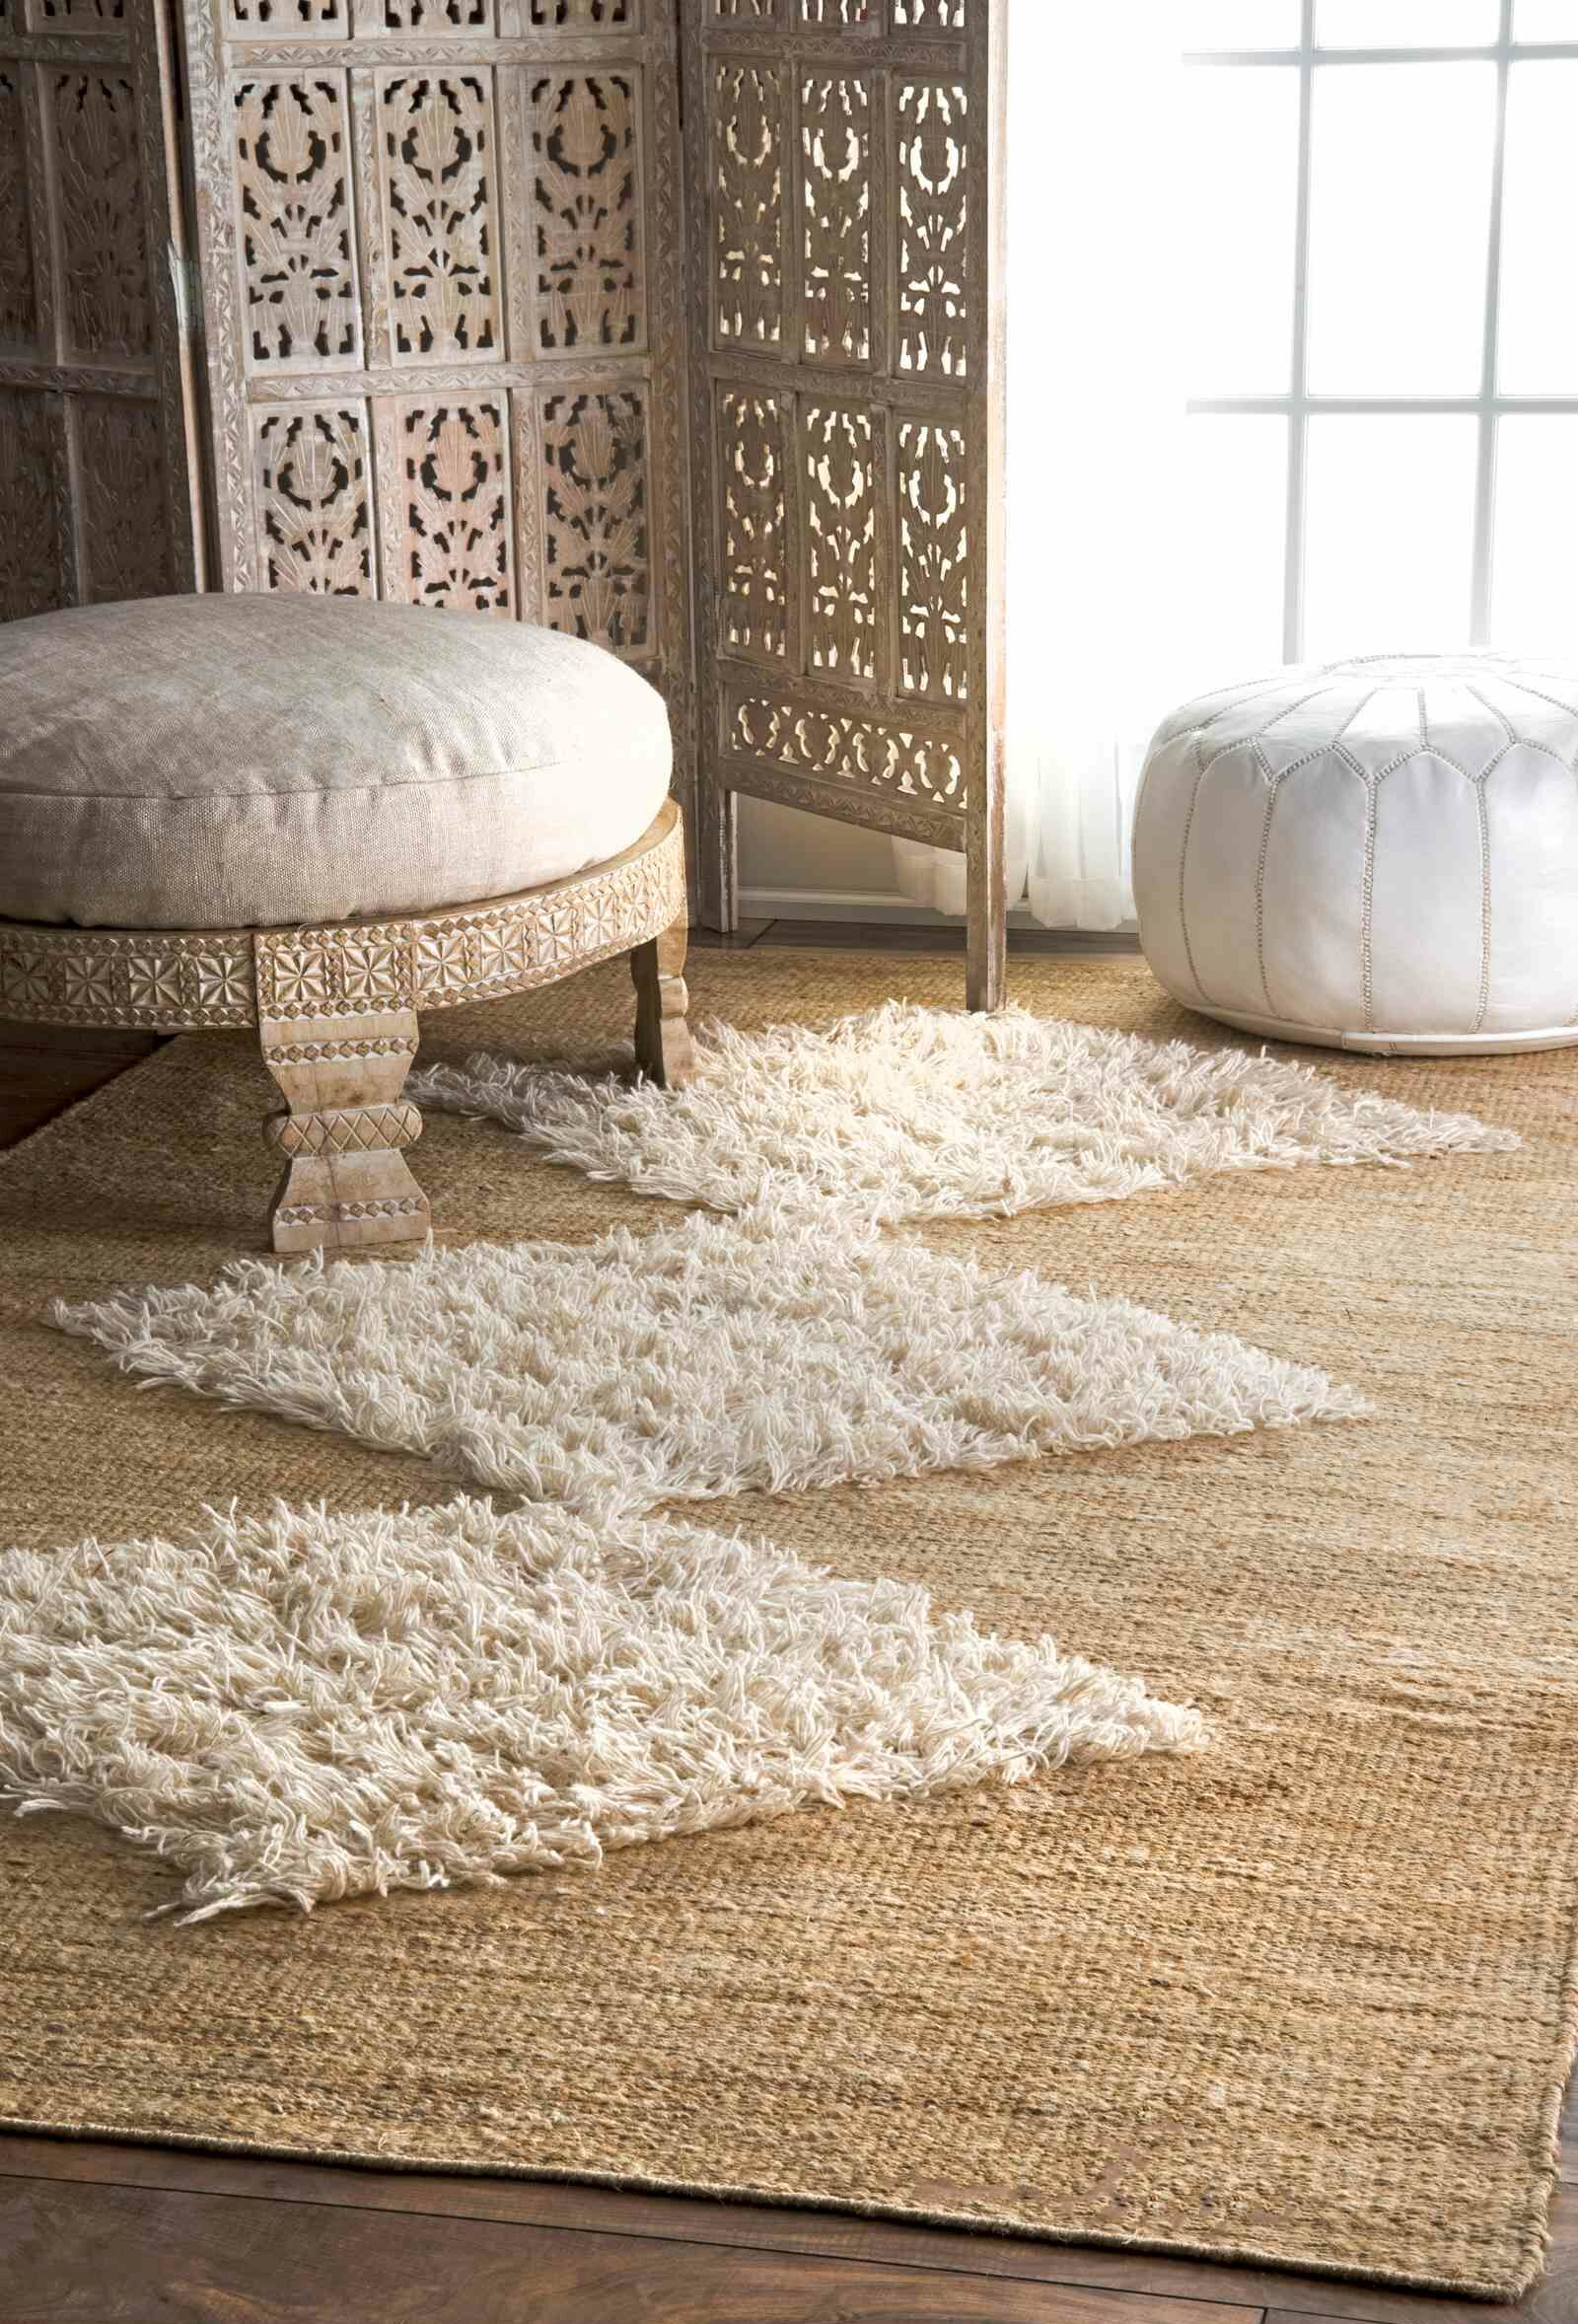 Cunningham Hand-Woven Beige Area Rug Rug Size: Rectangle 6' x 9'